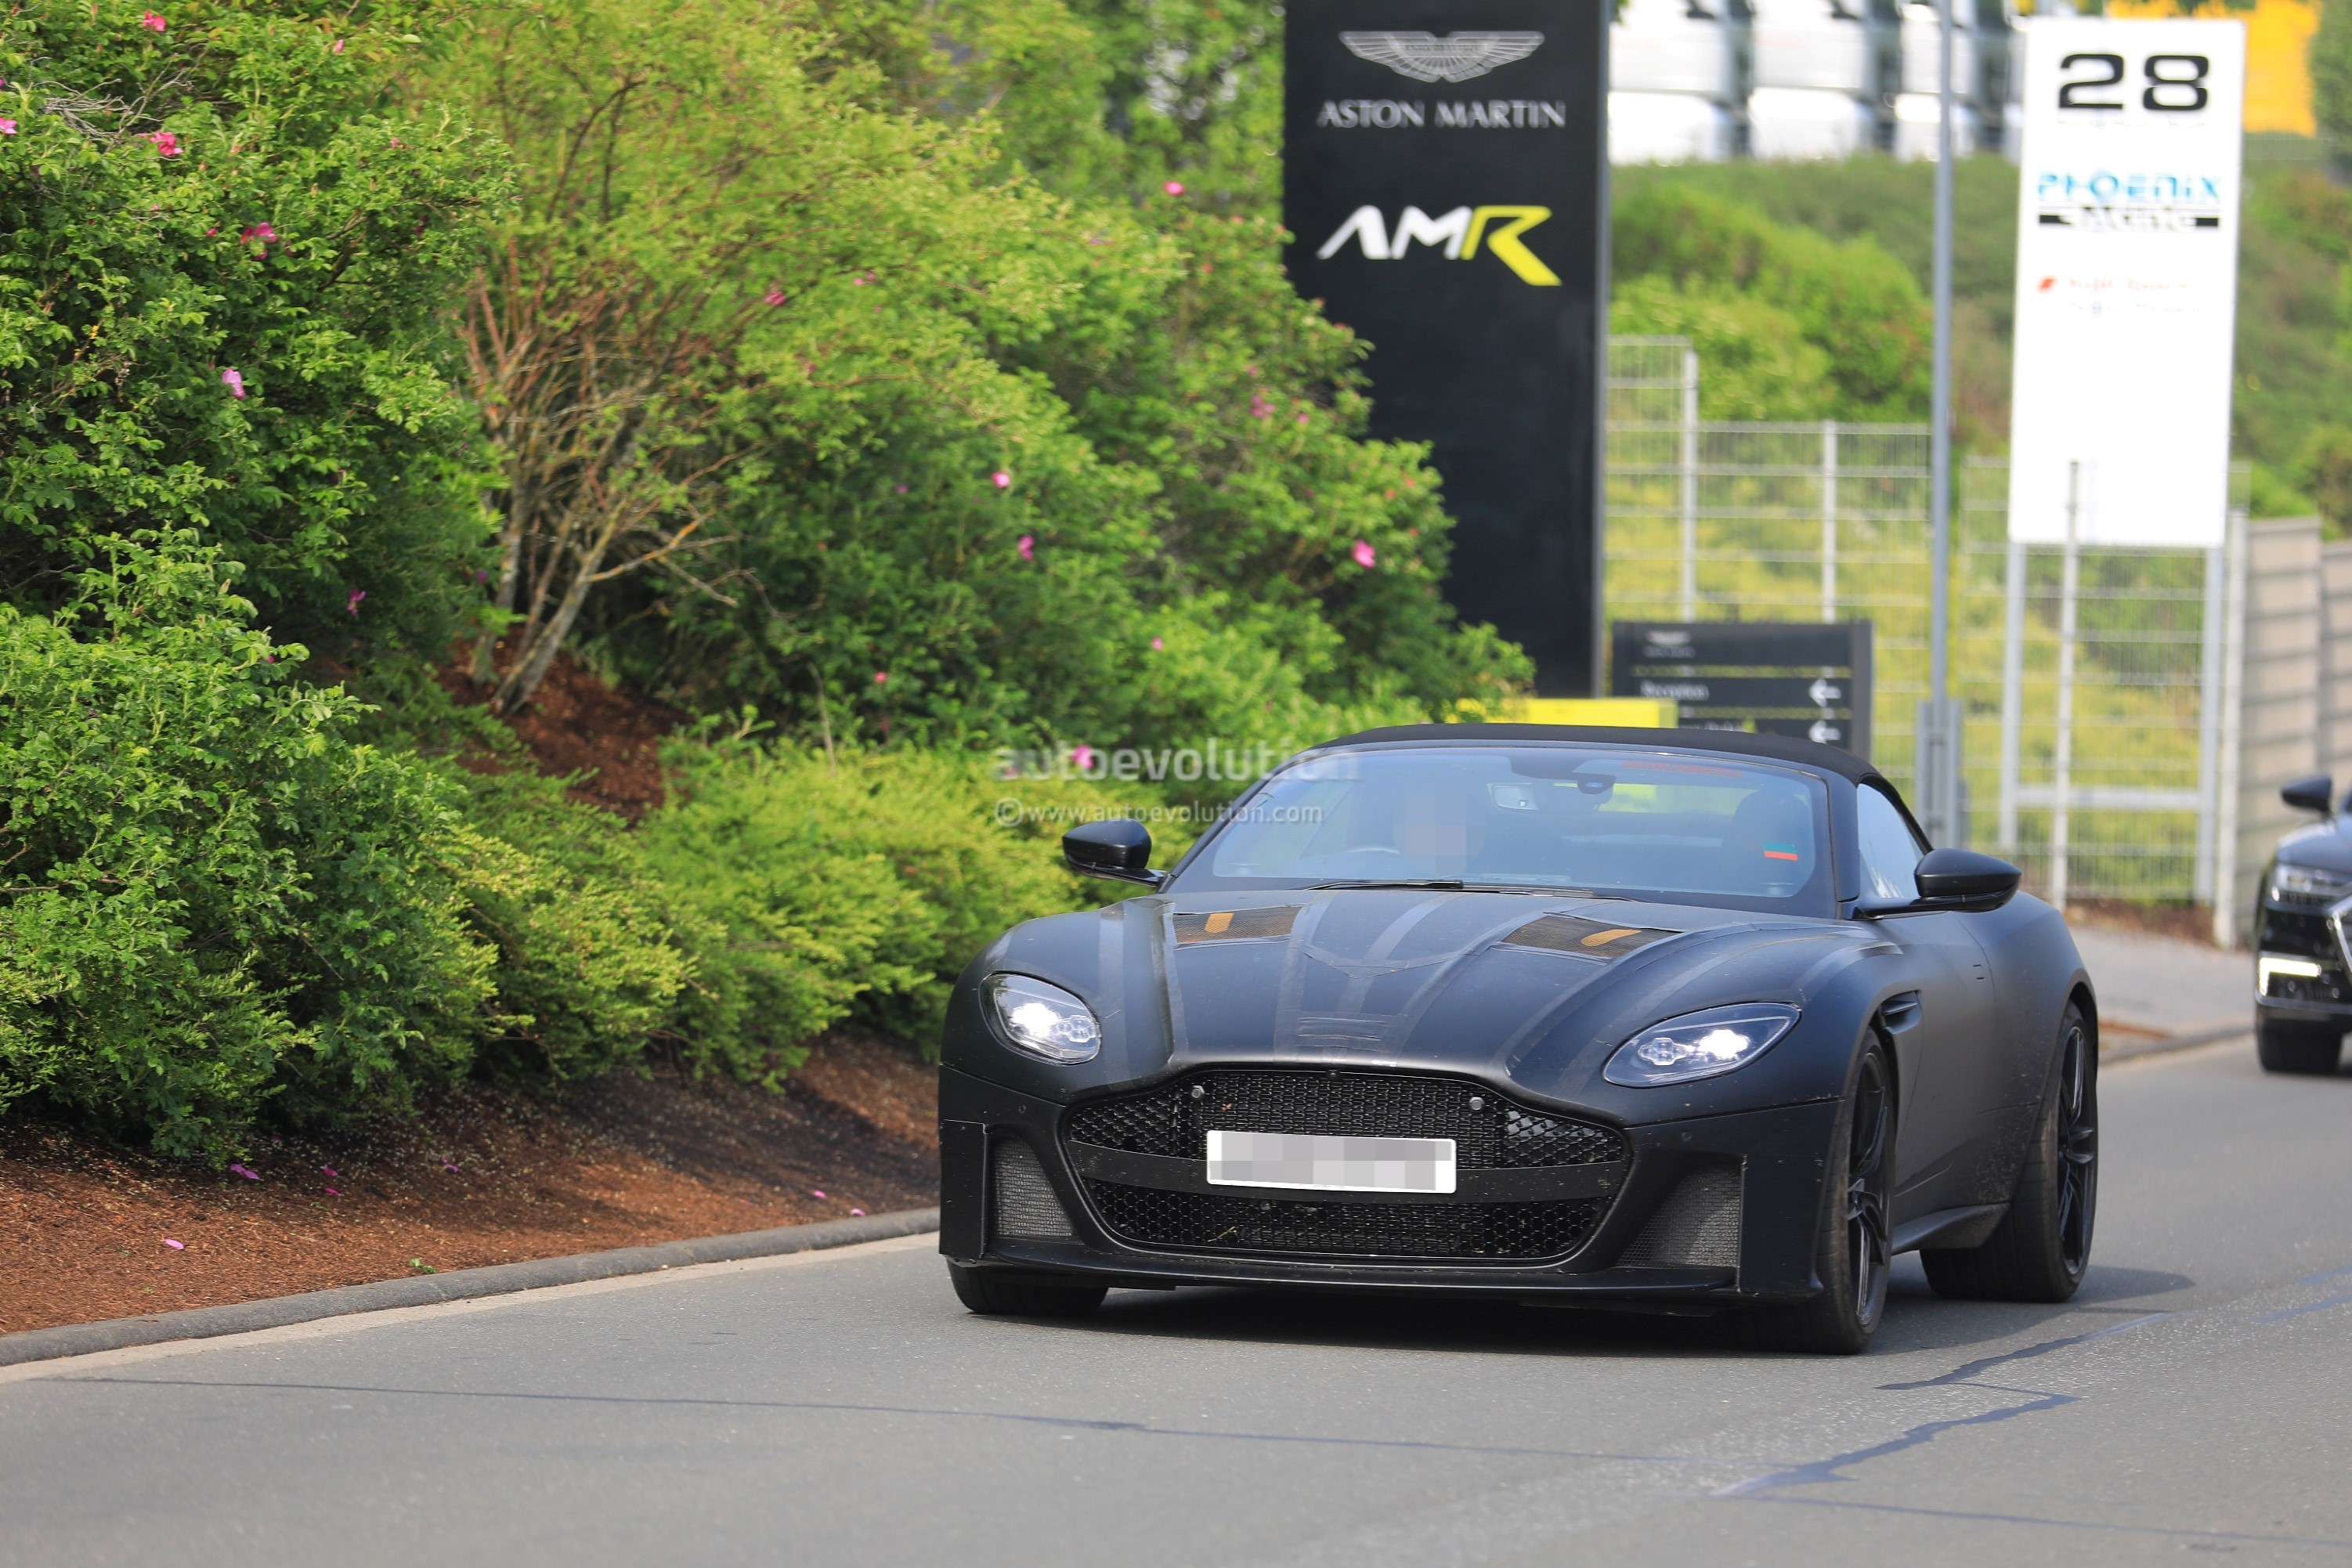 New Aston Martin Dbs Superleggera Spied In Volante Flavor